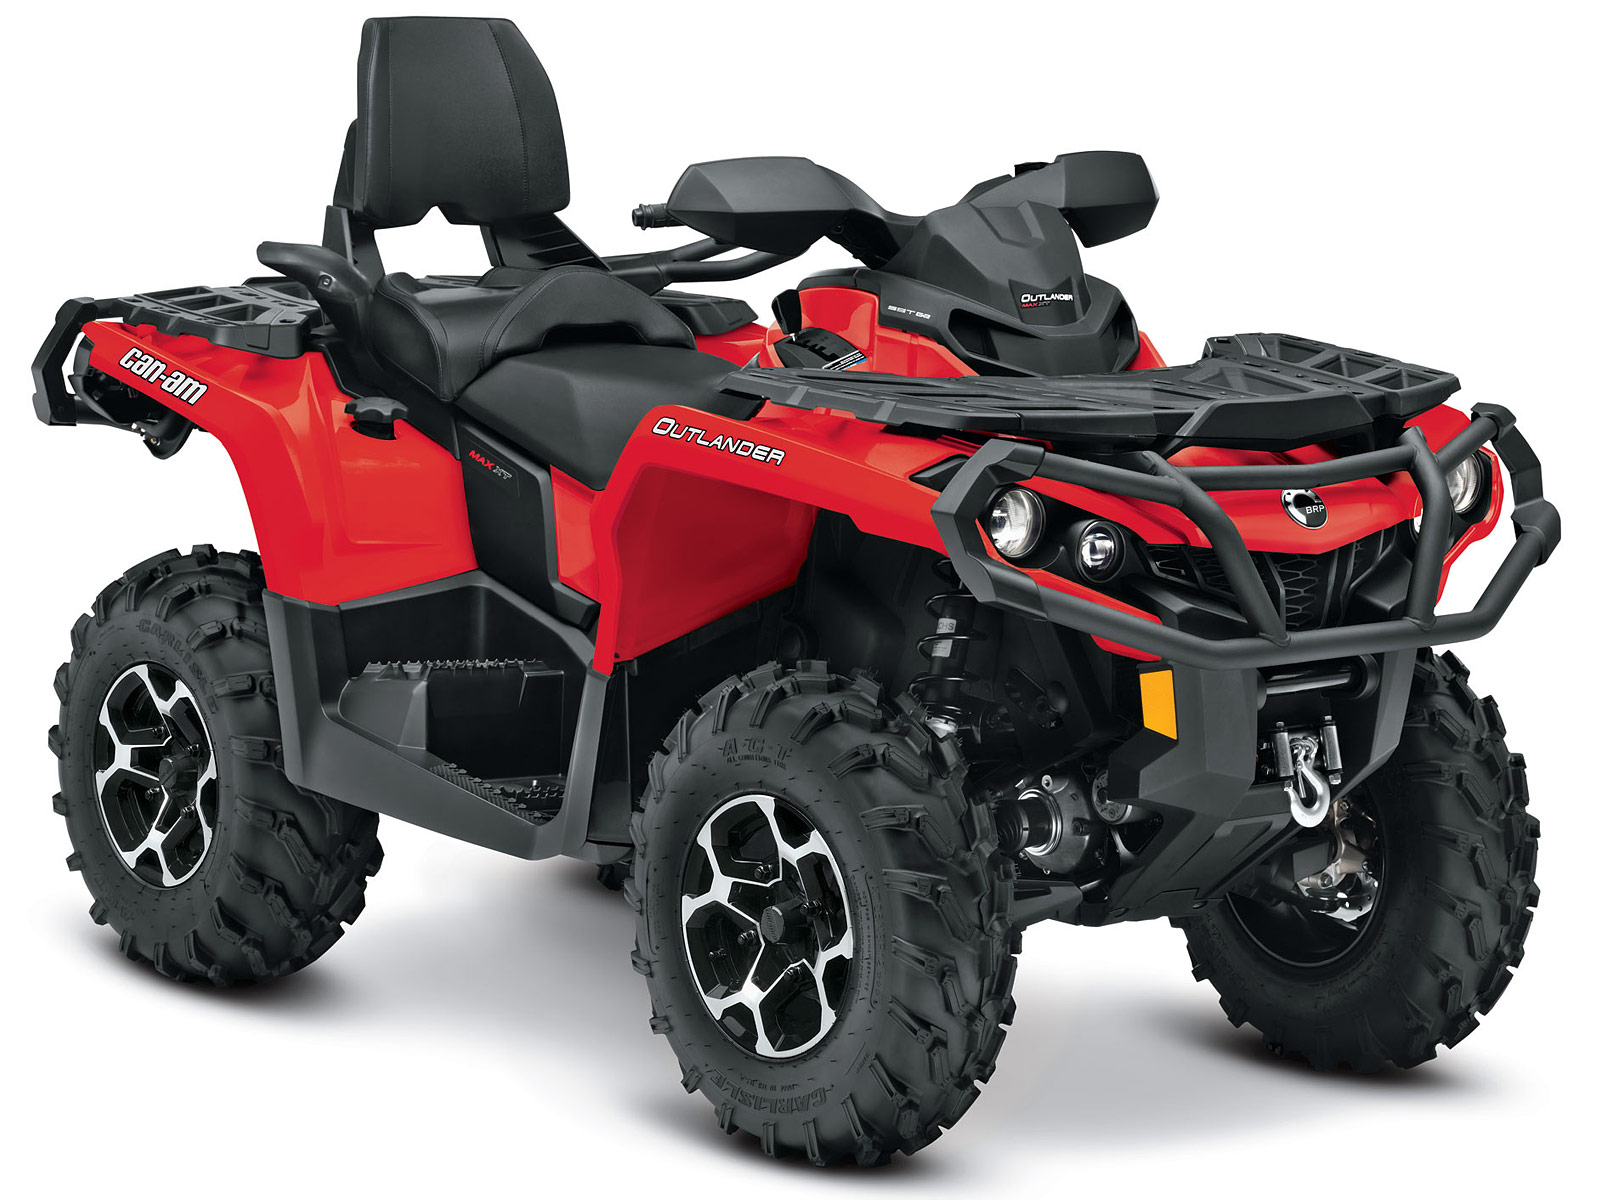 2013 Can-Am Outlander